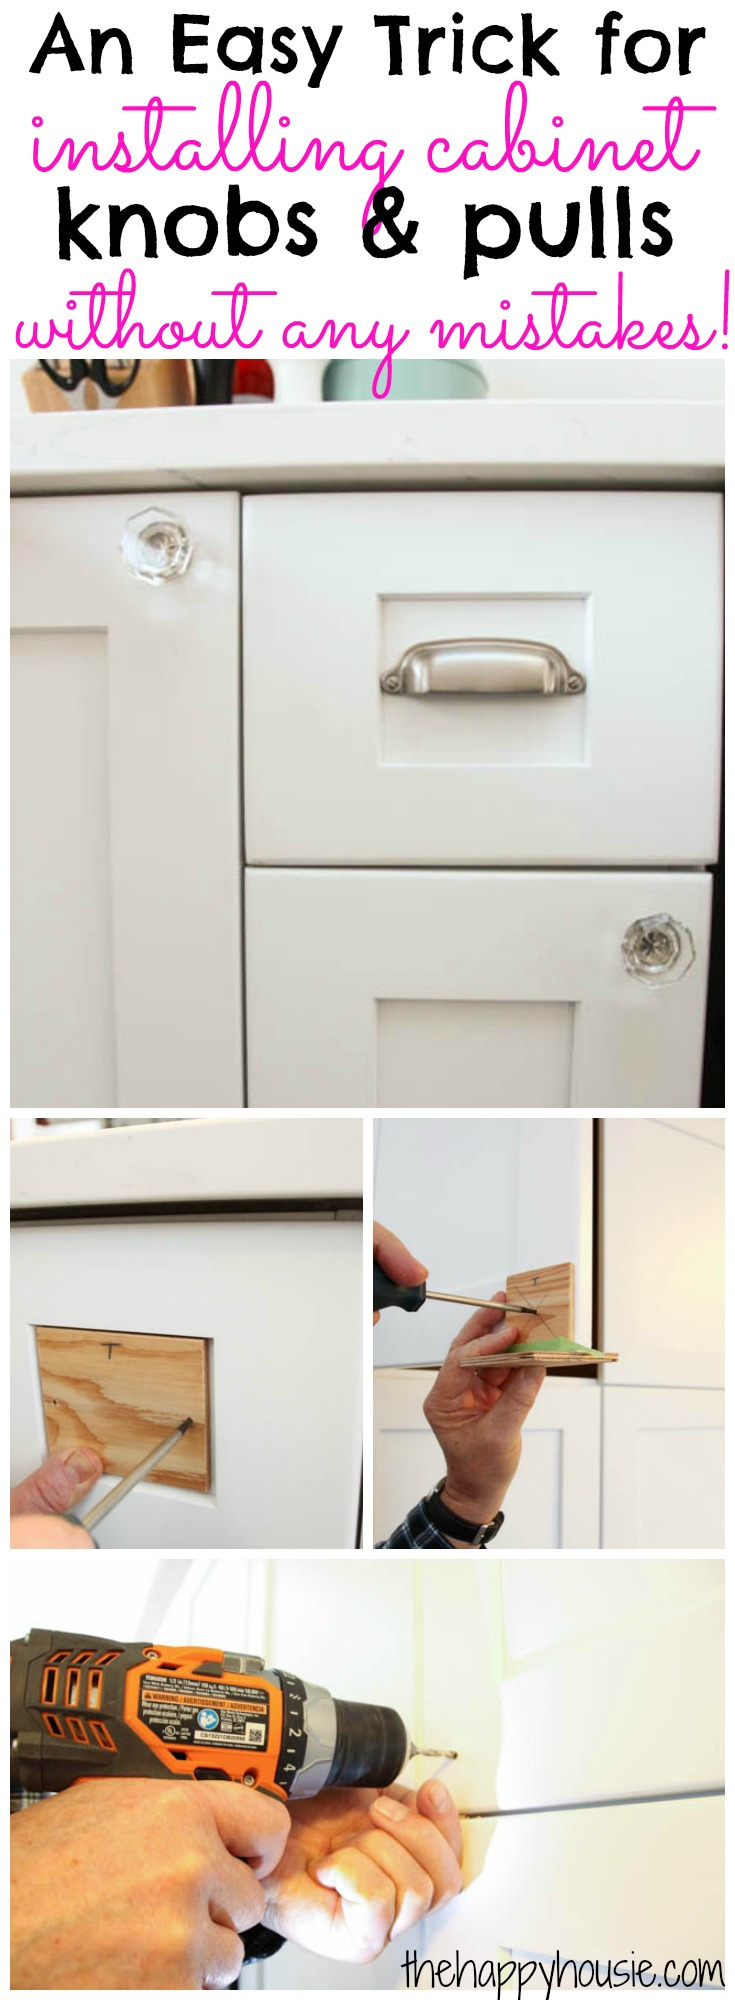 Installing Cabinet Doors Elegant How to Install Cabinet Knobs with A Template A Trick for